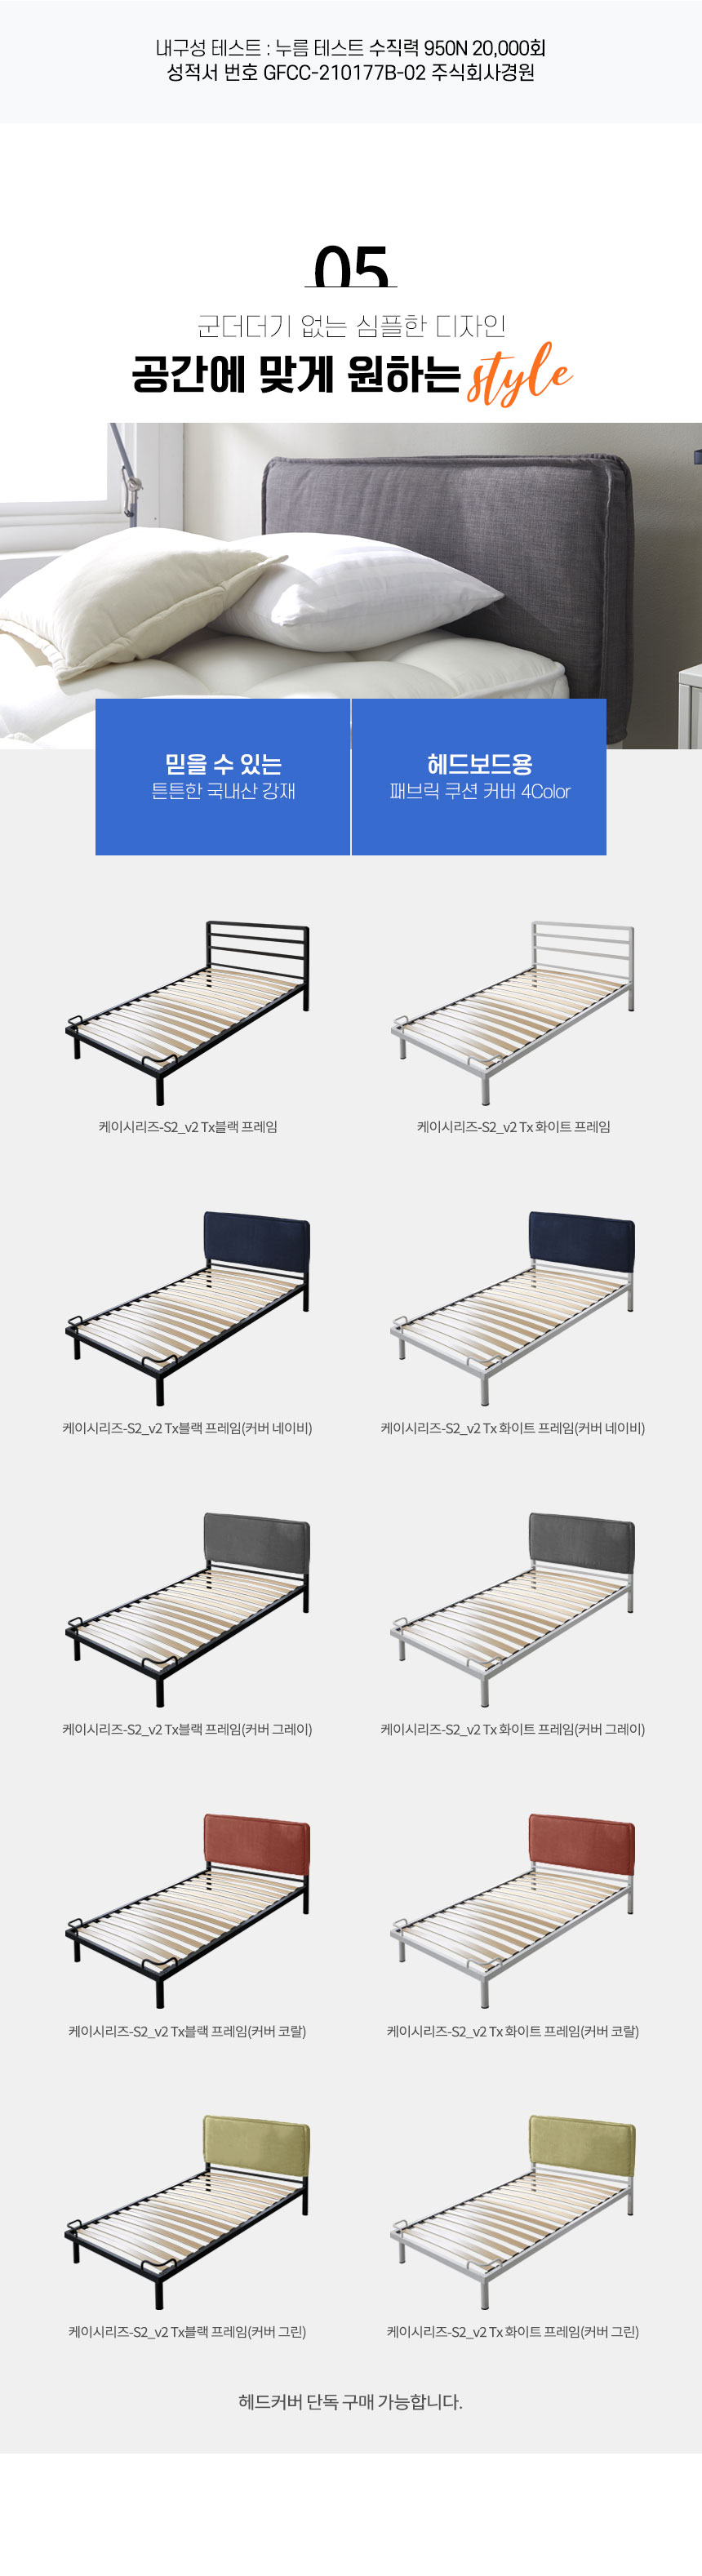 new_daybed_c06.jpg